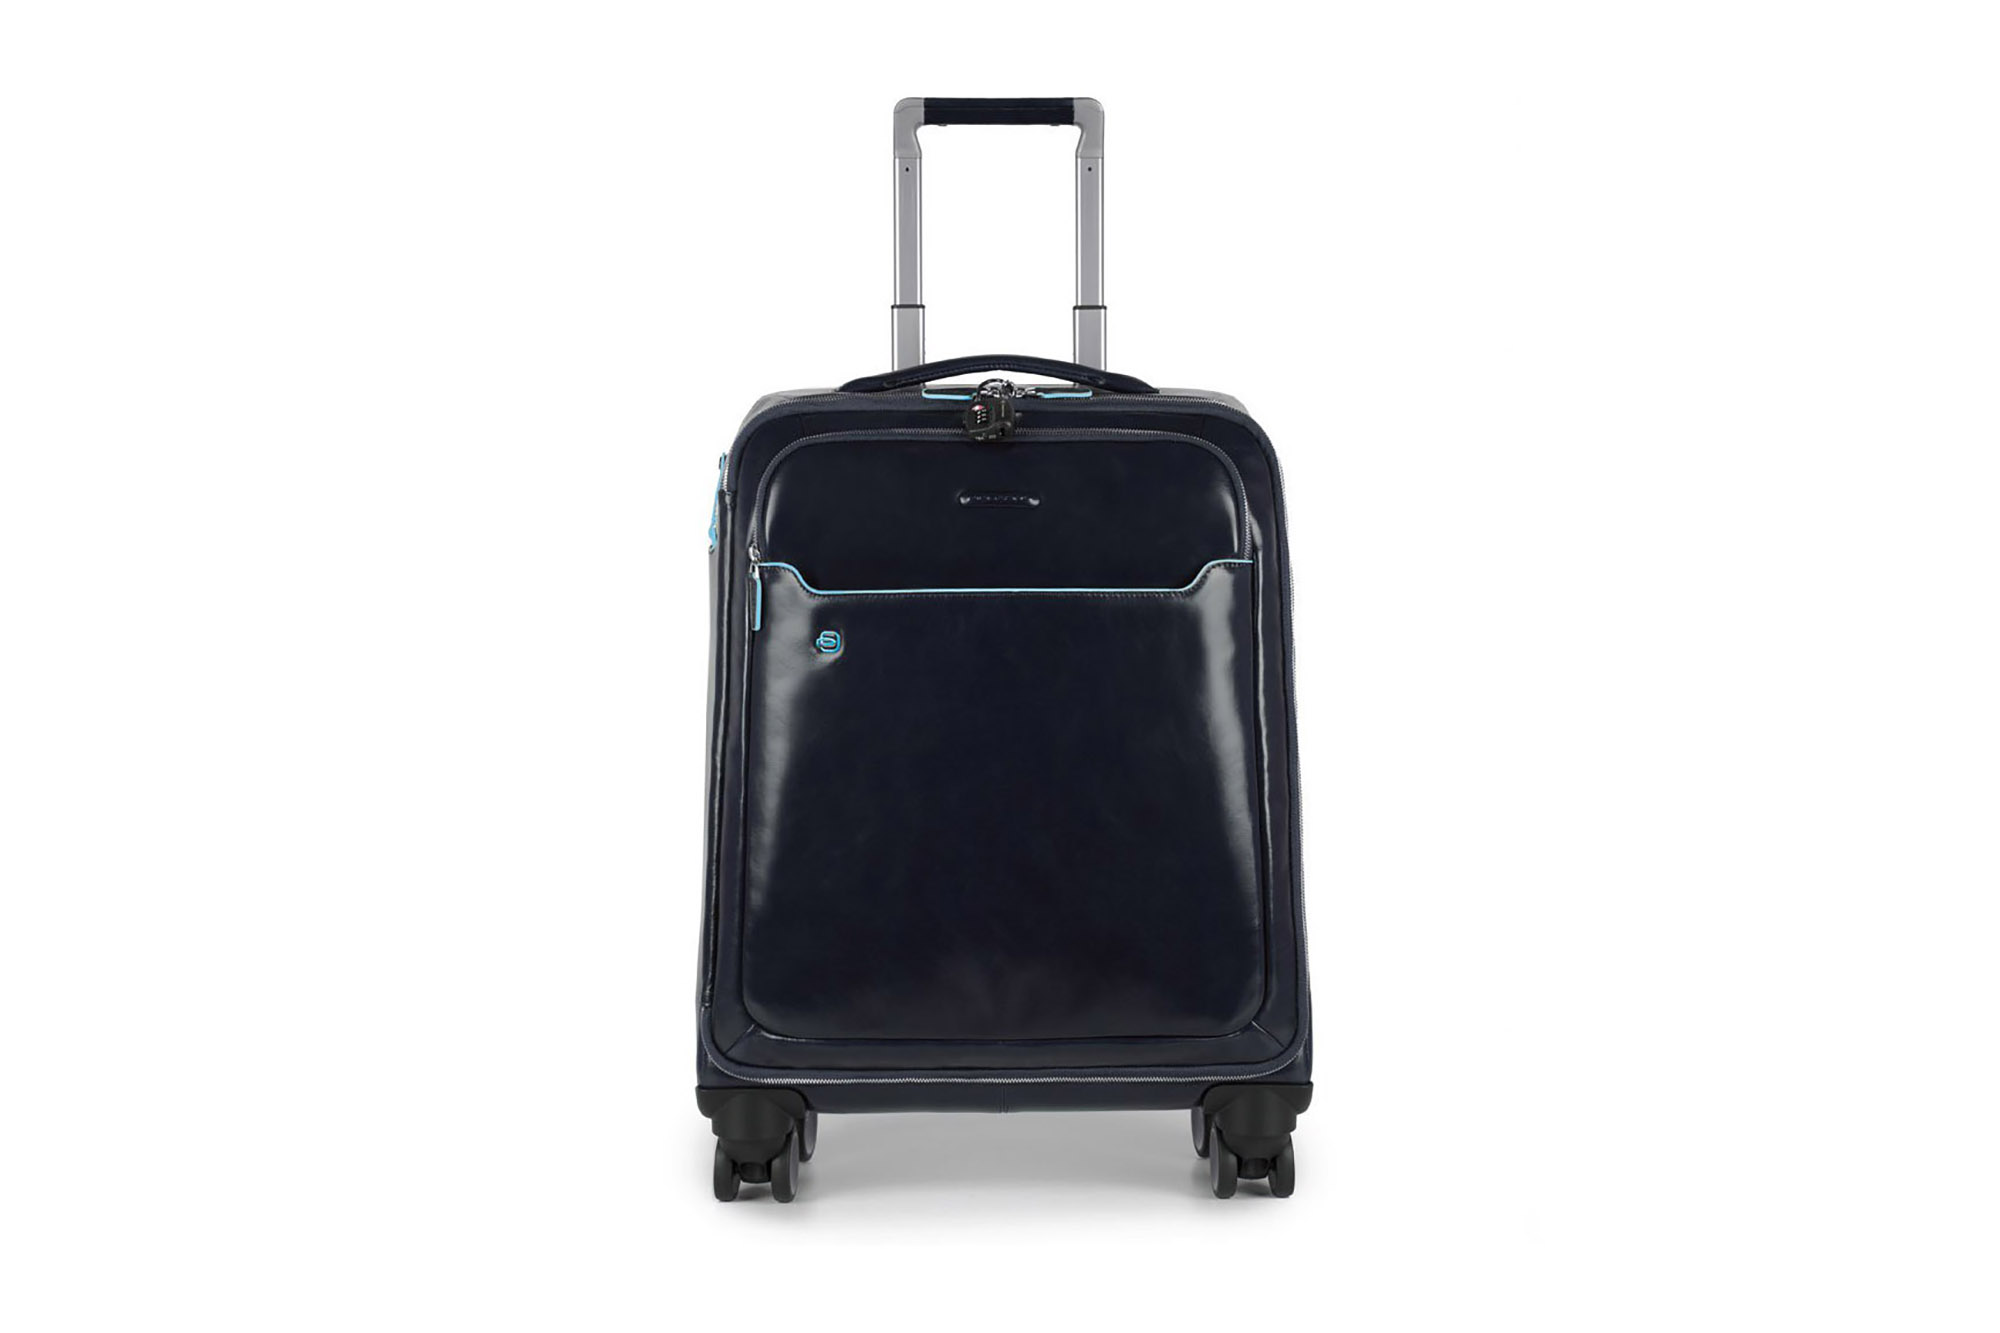 Shiny Marble Pattern Traveler Lightweight Rotating Luggage Cover Can Carry With You Can Expand Travel Bag Trolley Rolling Luggage Cover